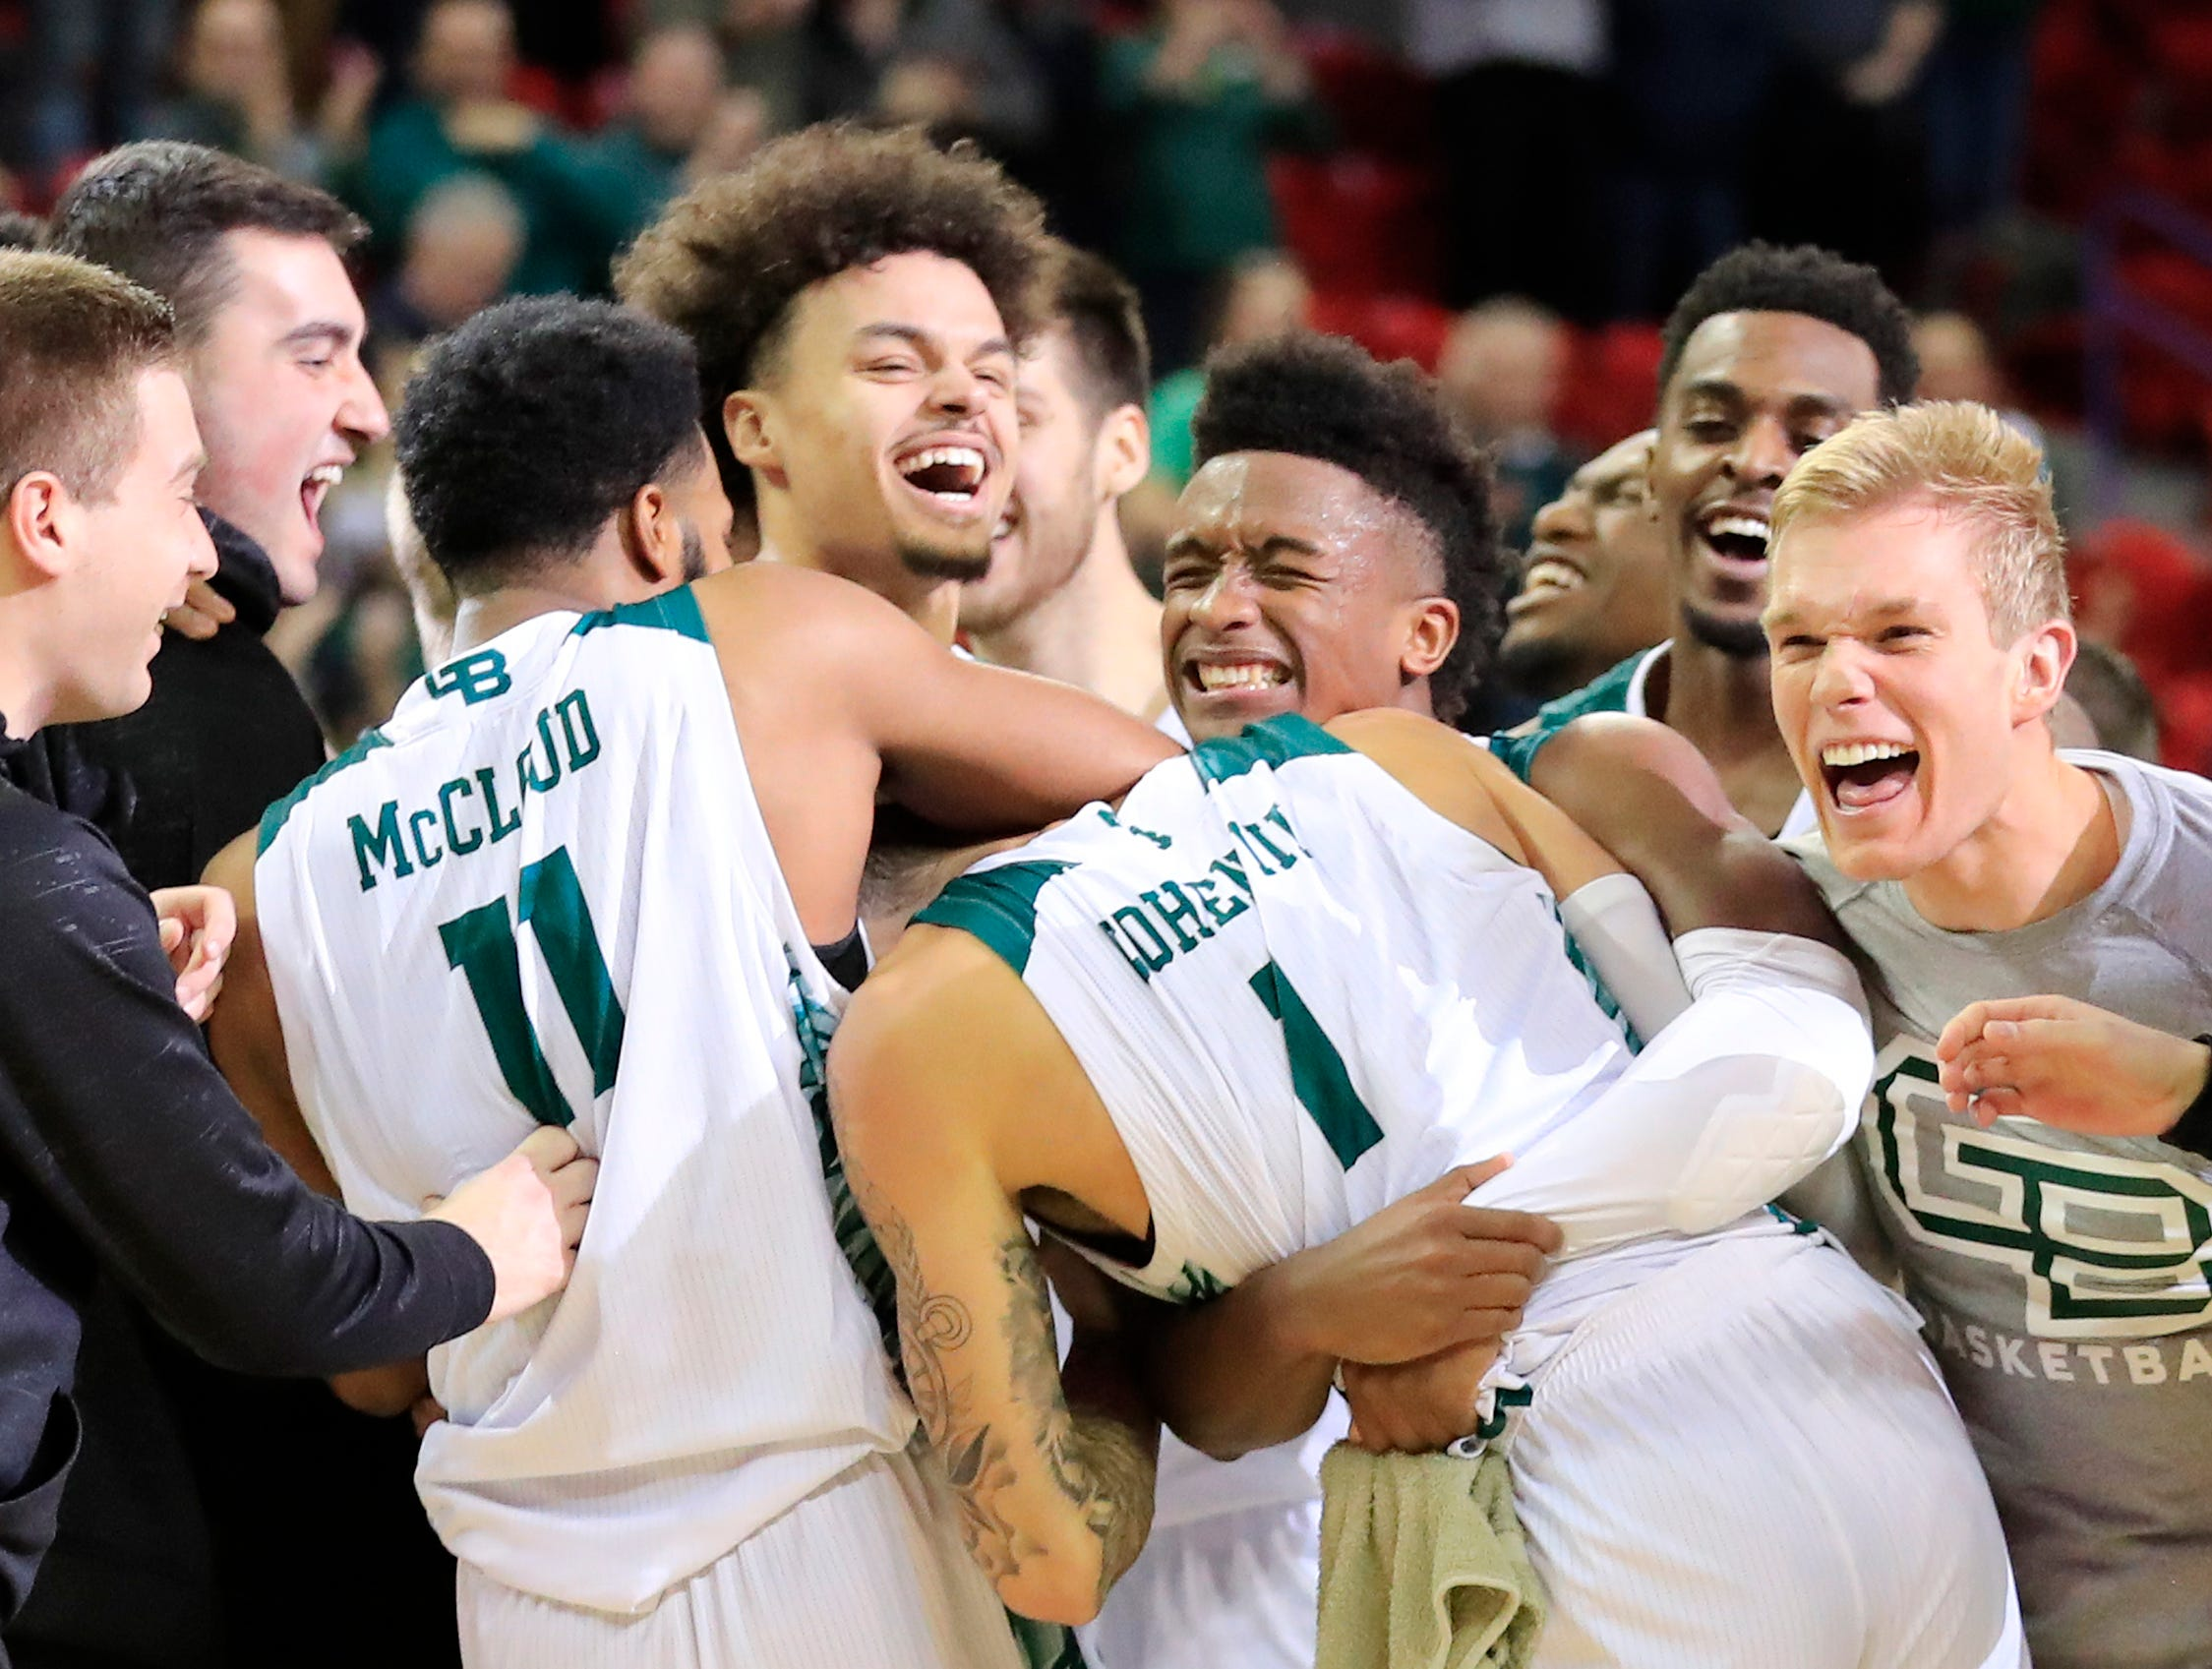 Green Bay Phoenix guard Sandy Cohen III (1) celebrates after hitting a buzzer beater to defeat the Cleveland State Vikings in a Horizon League basketball game at the Resch Center on Saturday, January 5, 2019 in Green Bay, Wis.